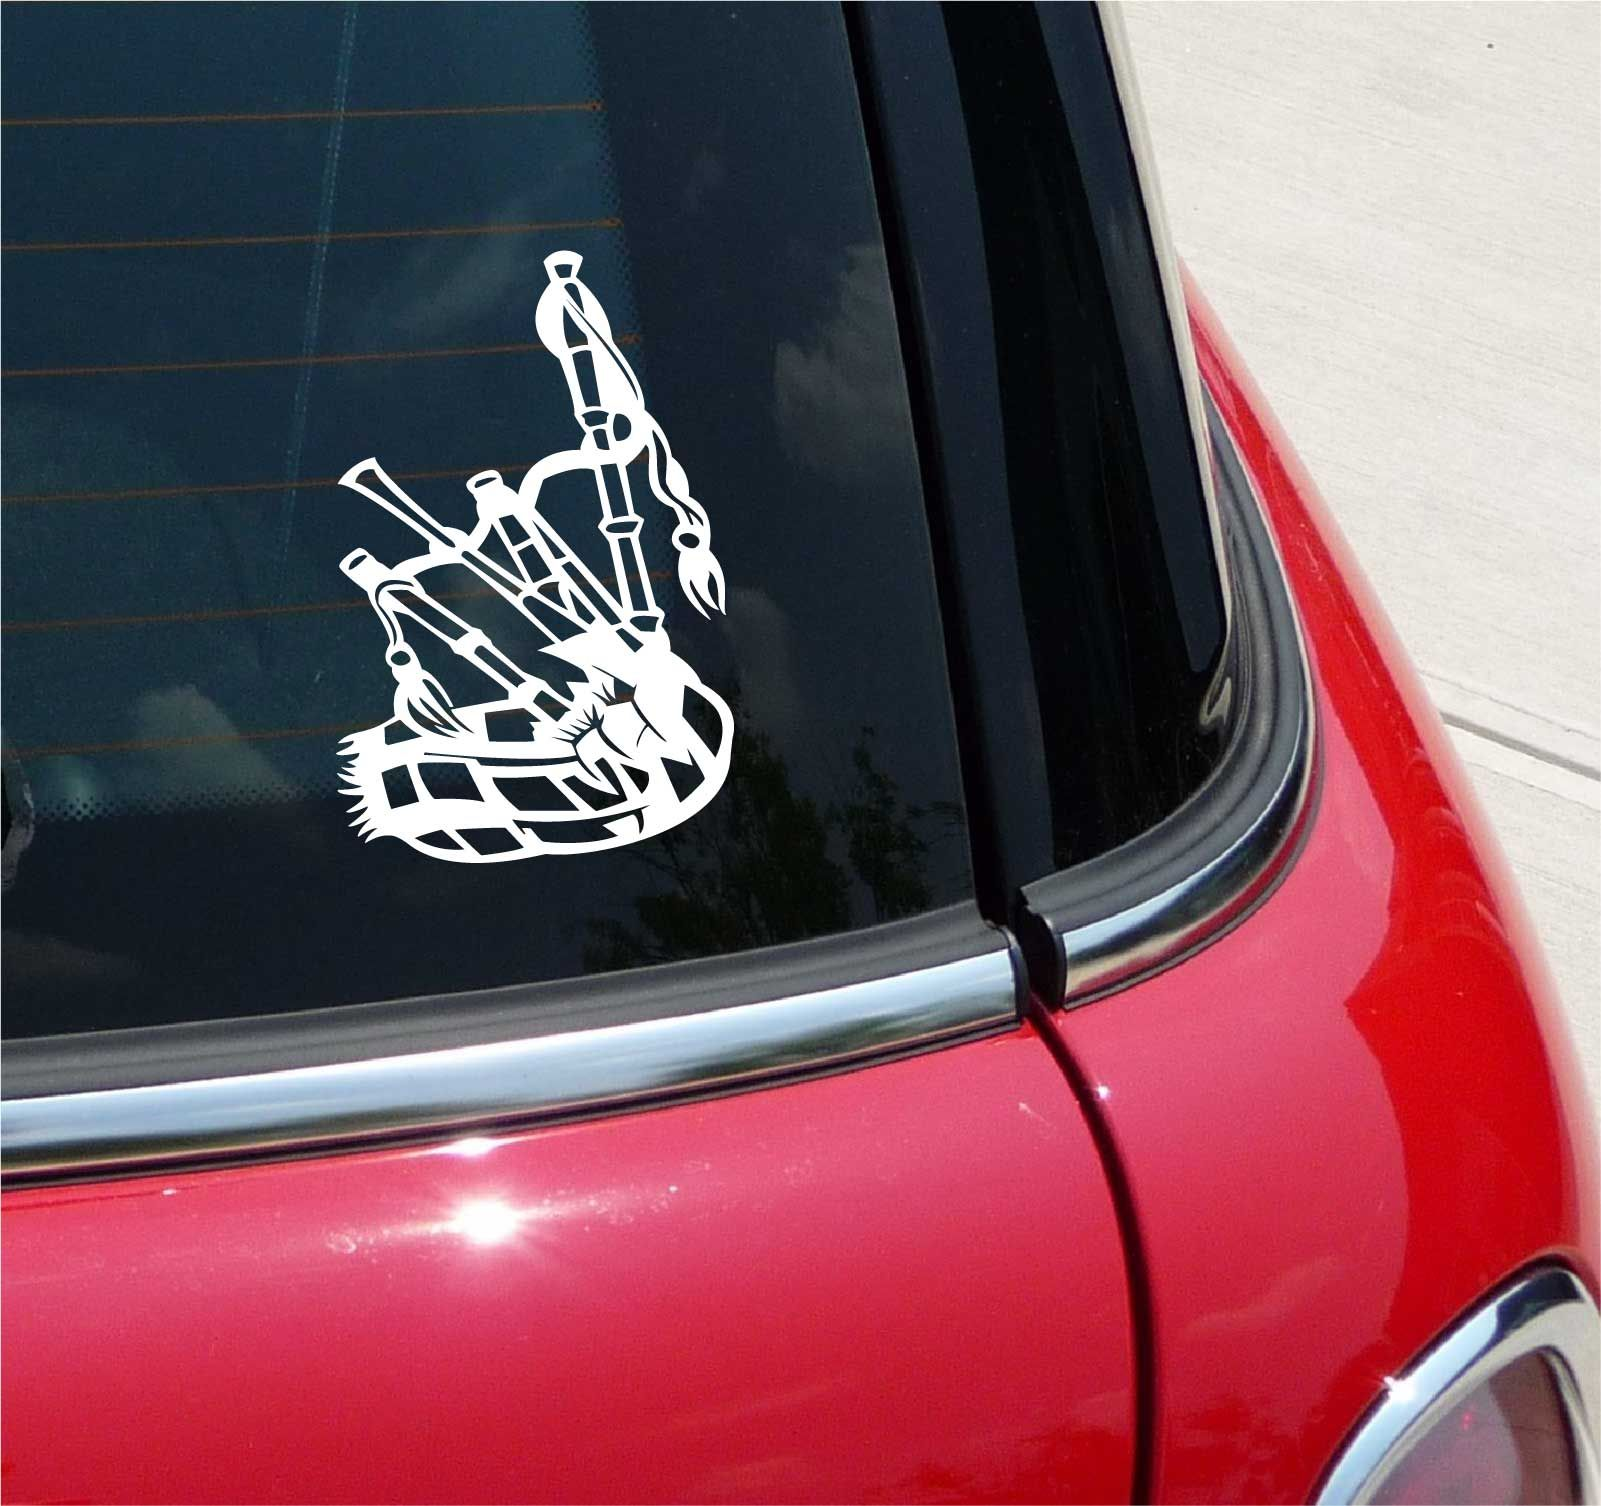 Bagpipes Scottish Kilt Music Piper Graphic Decal Sticker Vinyl Car